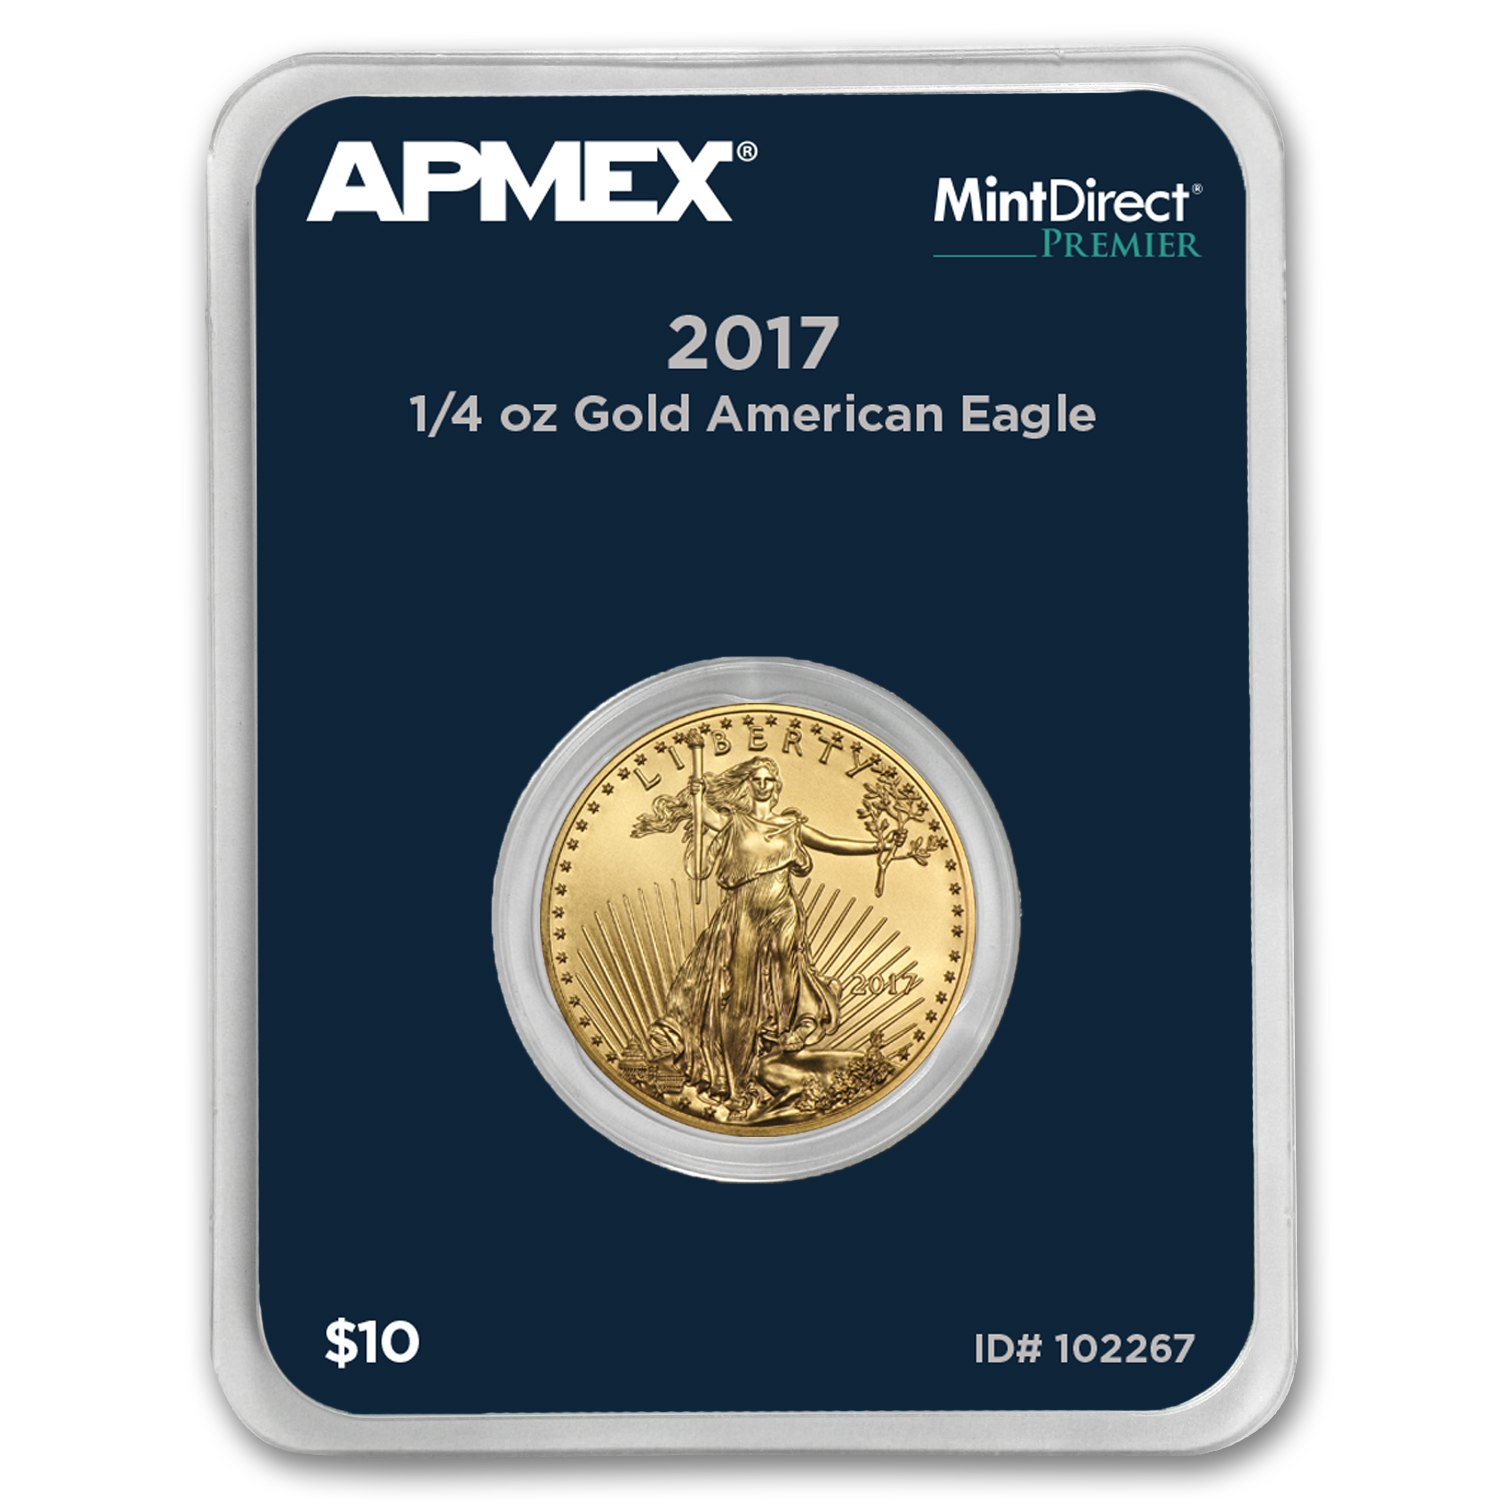 2017 1/4 oz Gold American Eagle (MintDirect® Premier Single)